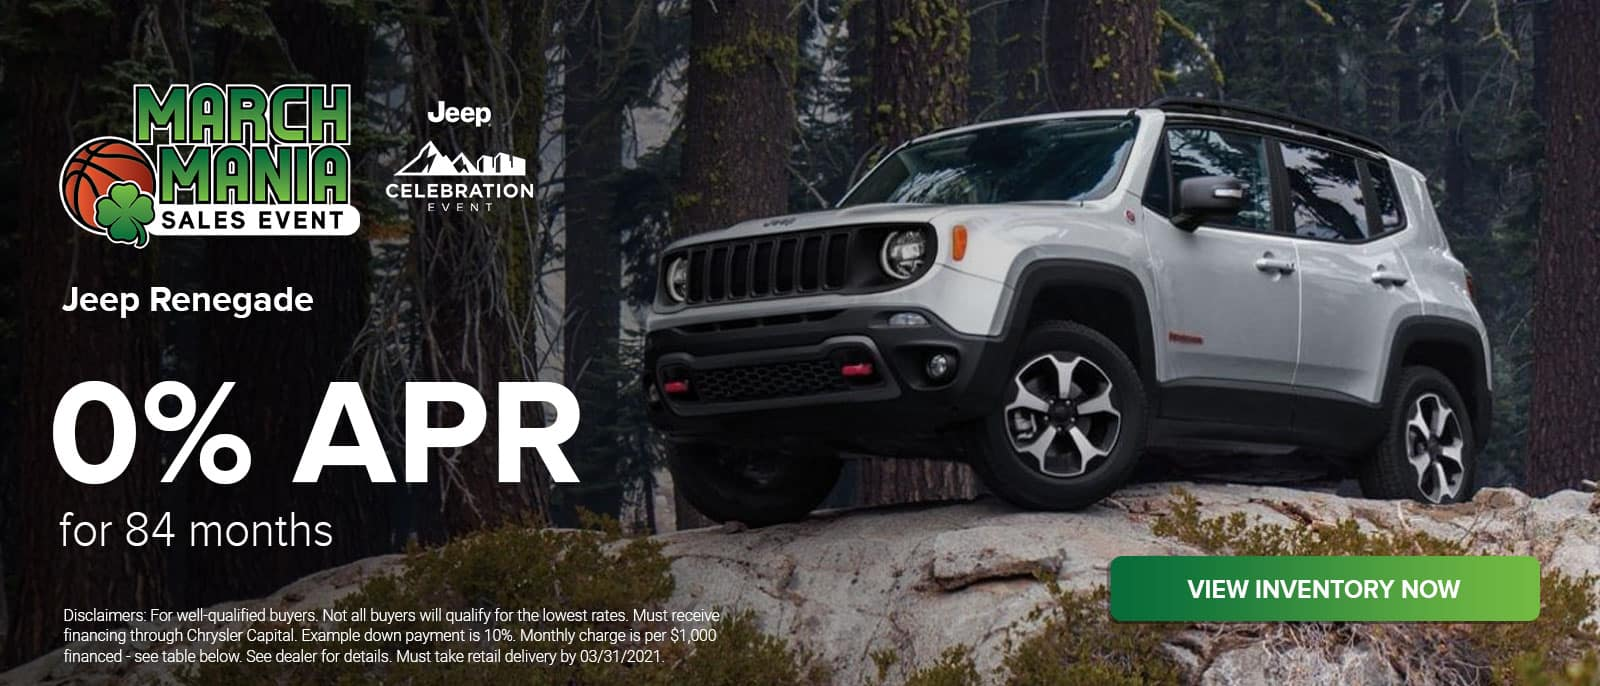 Jeep-Renegade-automall